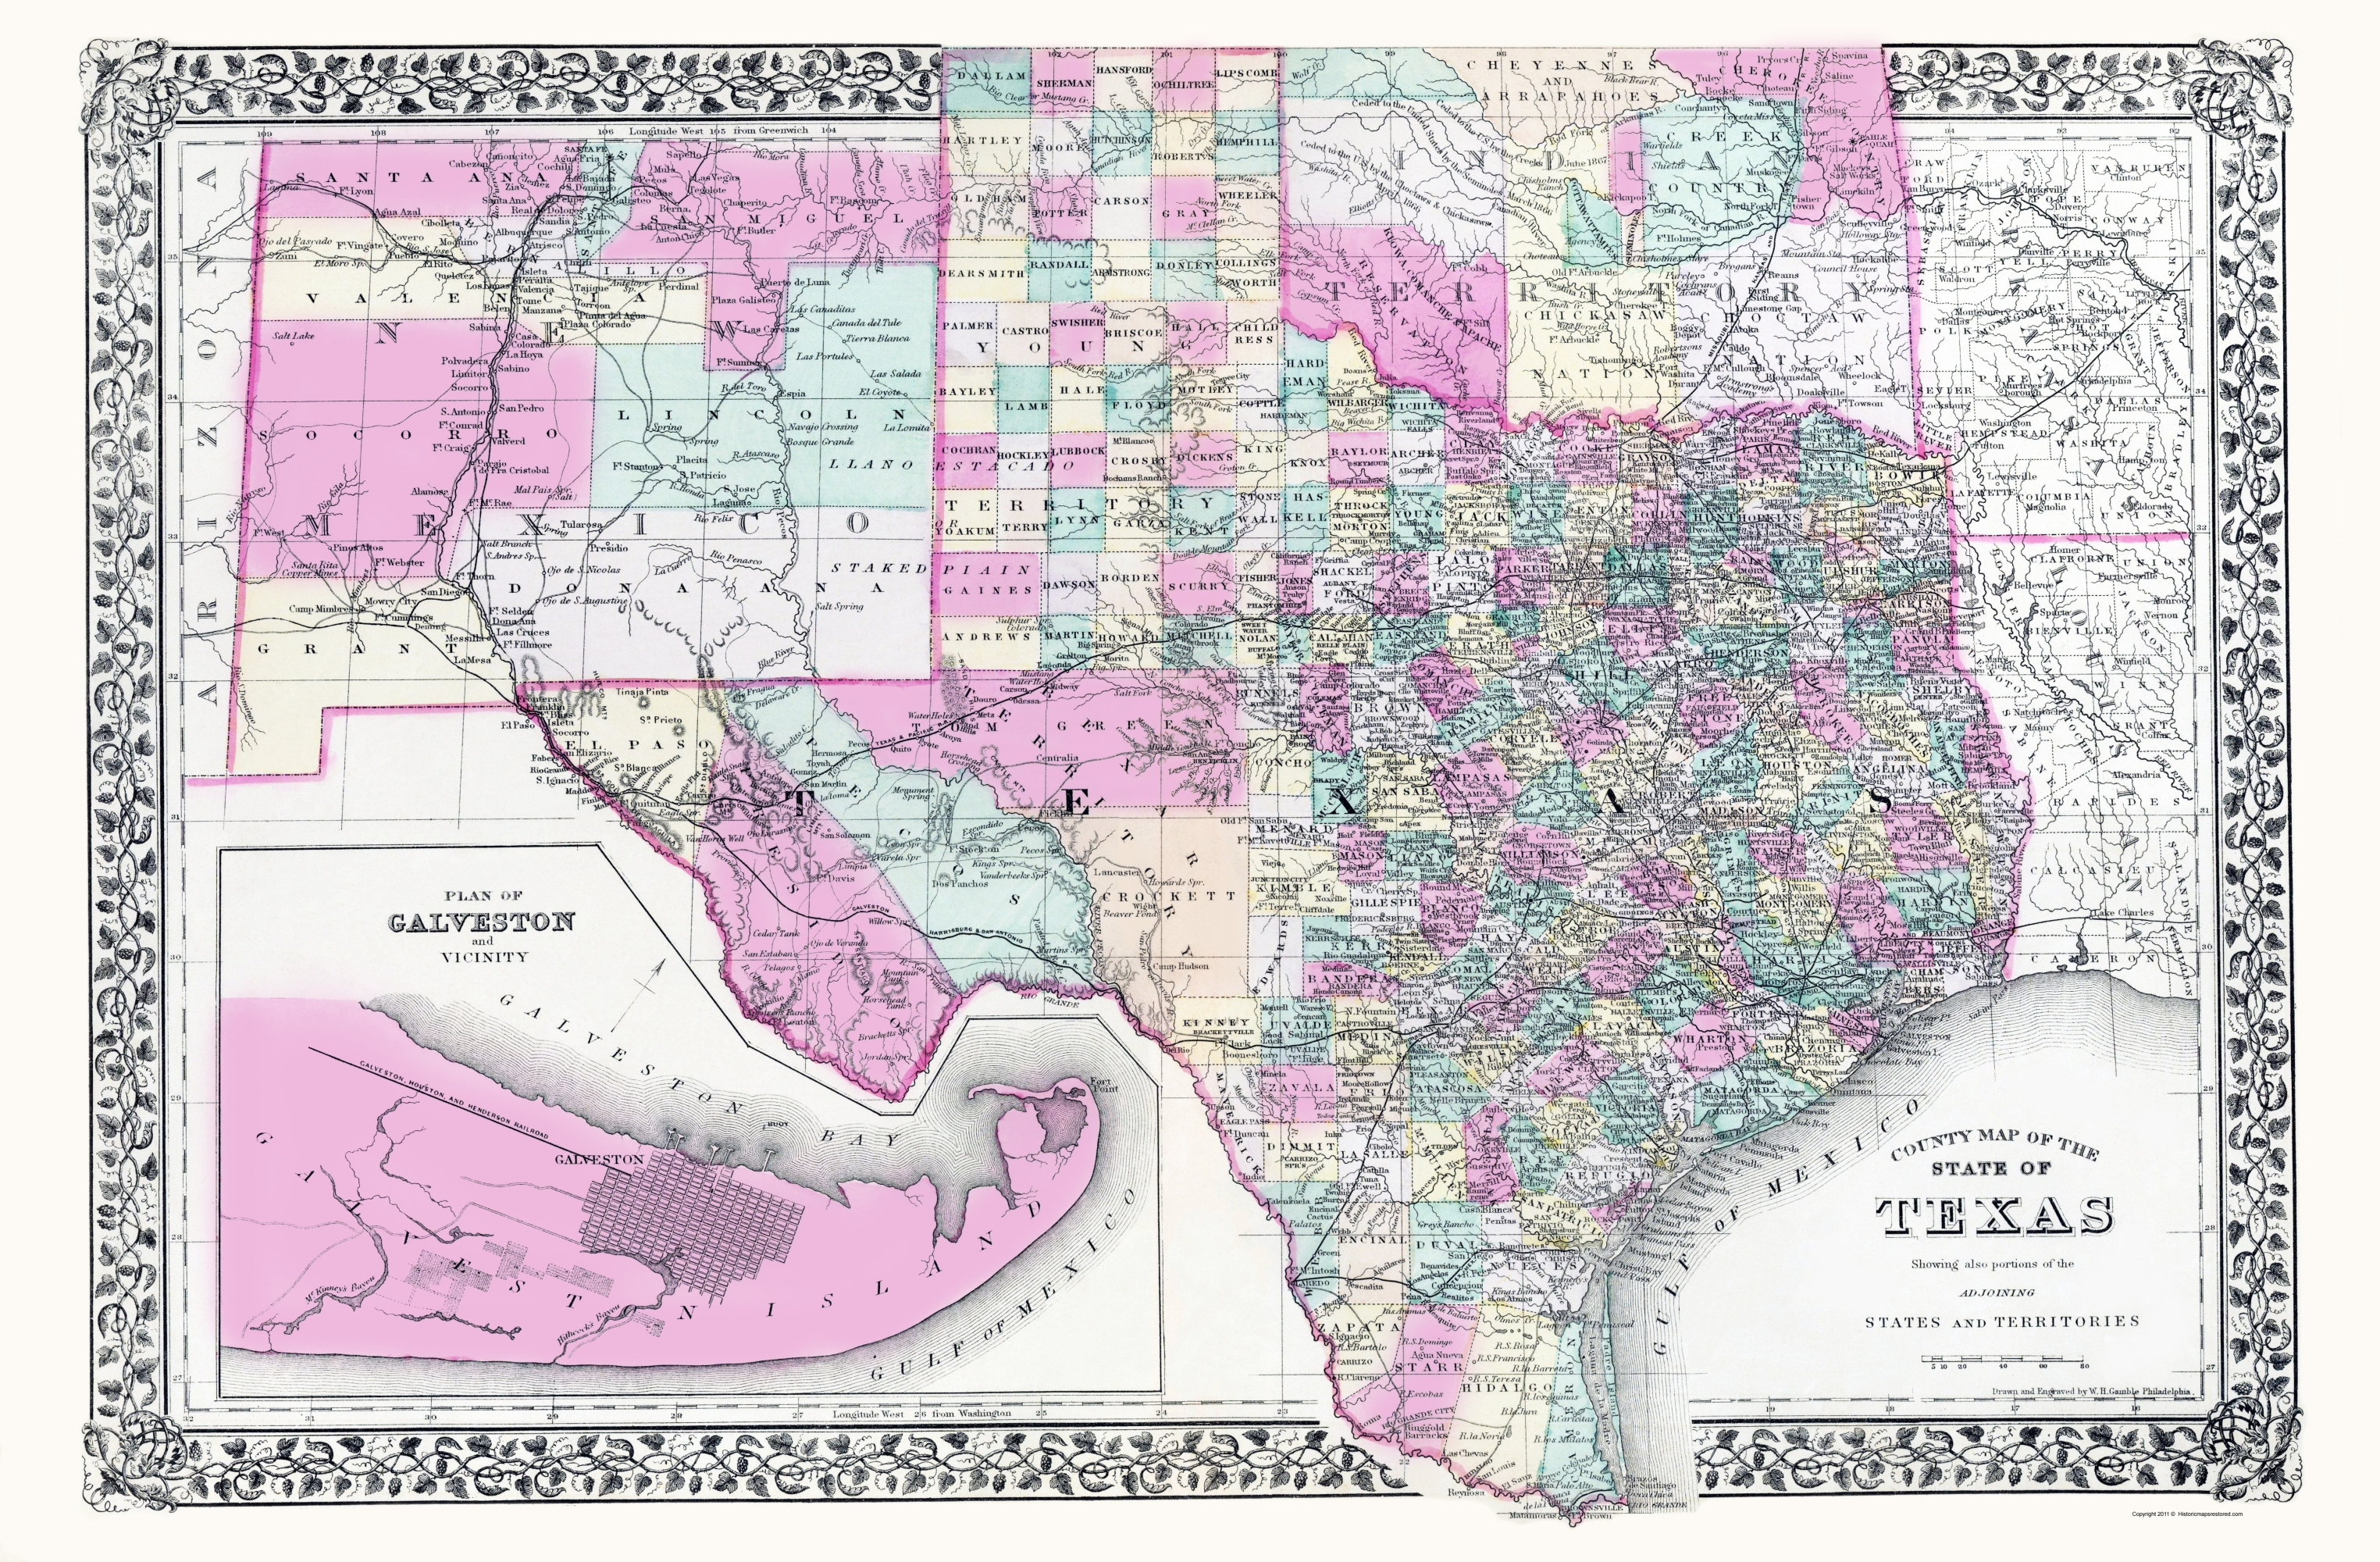 Map Of Texas New Mexico.Old State Map Texas New Mexico And Indian Territory Gamble 1890 23 X 35